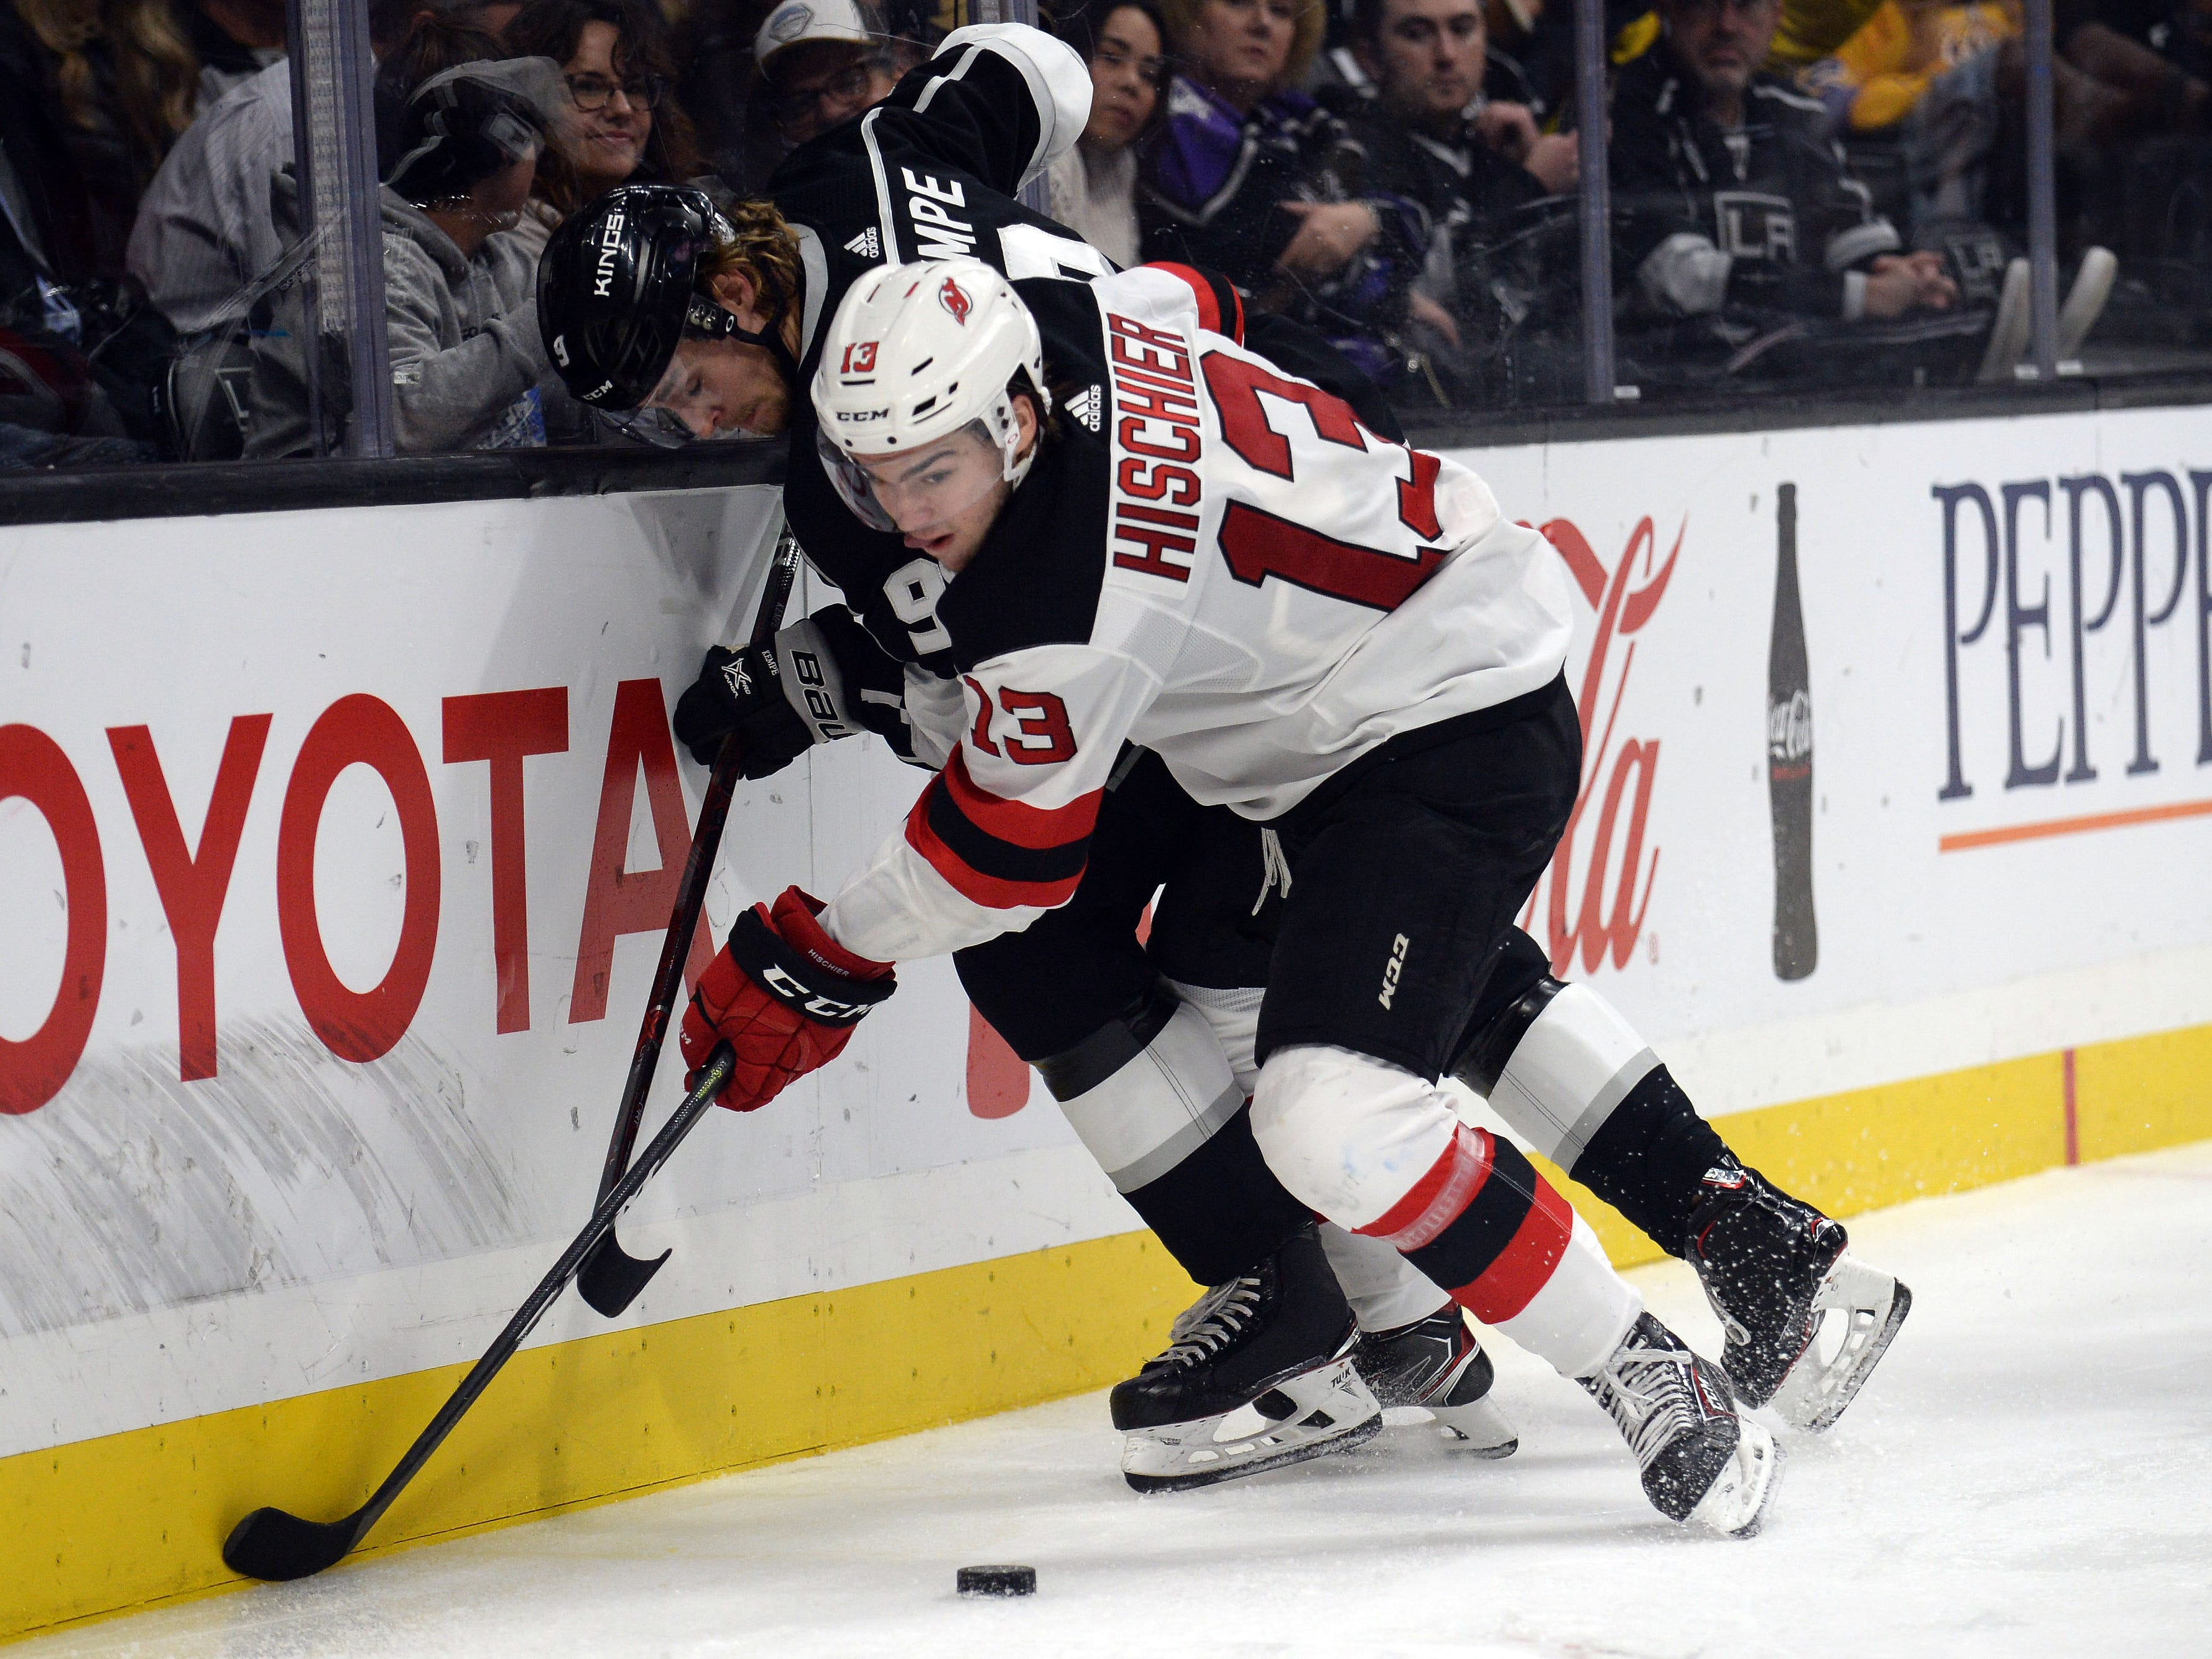 December 6, 2018; Los Angeles, CA, USA; New Jersey Devils center Nico Hischier (13) plays for the puck against Los Angeles Kings center Adrian Kempe (9) during the second period at Staples Center.